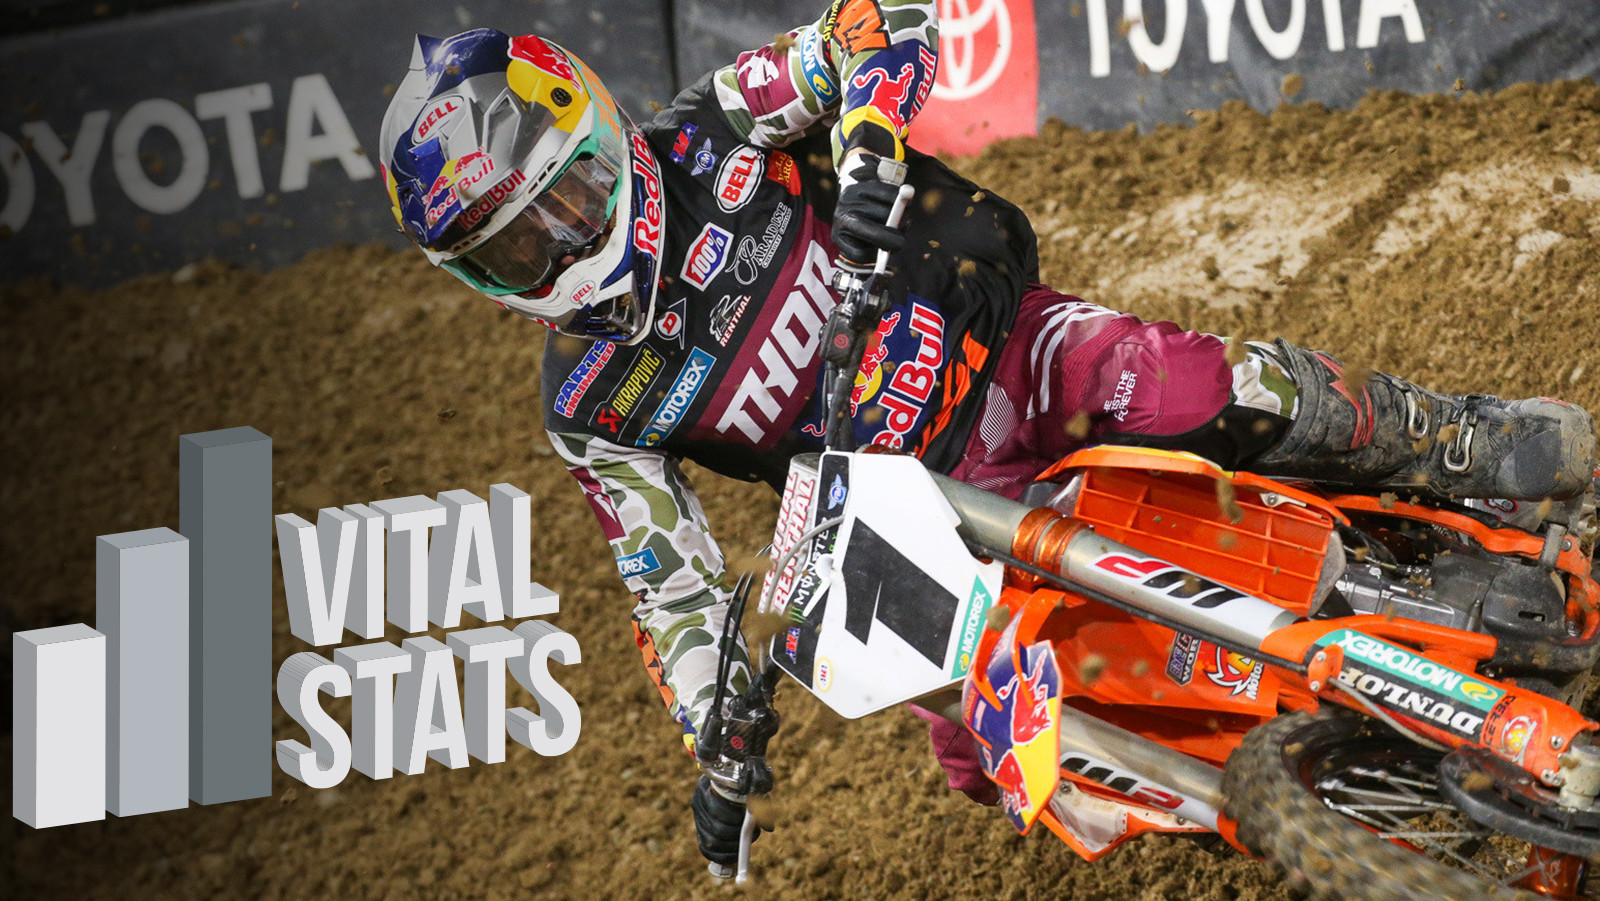 Vital Stats: 2020 Supercross Championship, Week 6